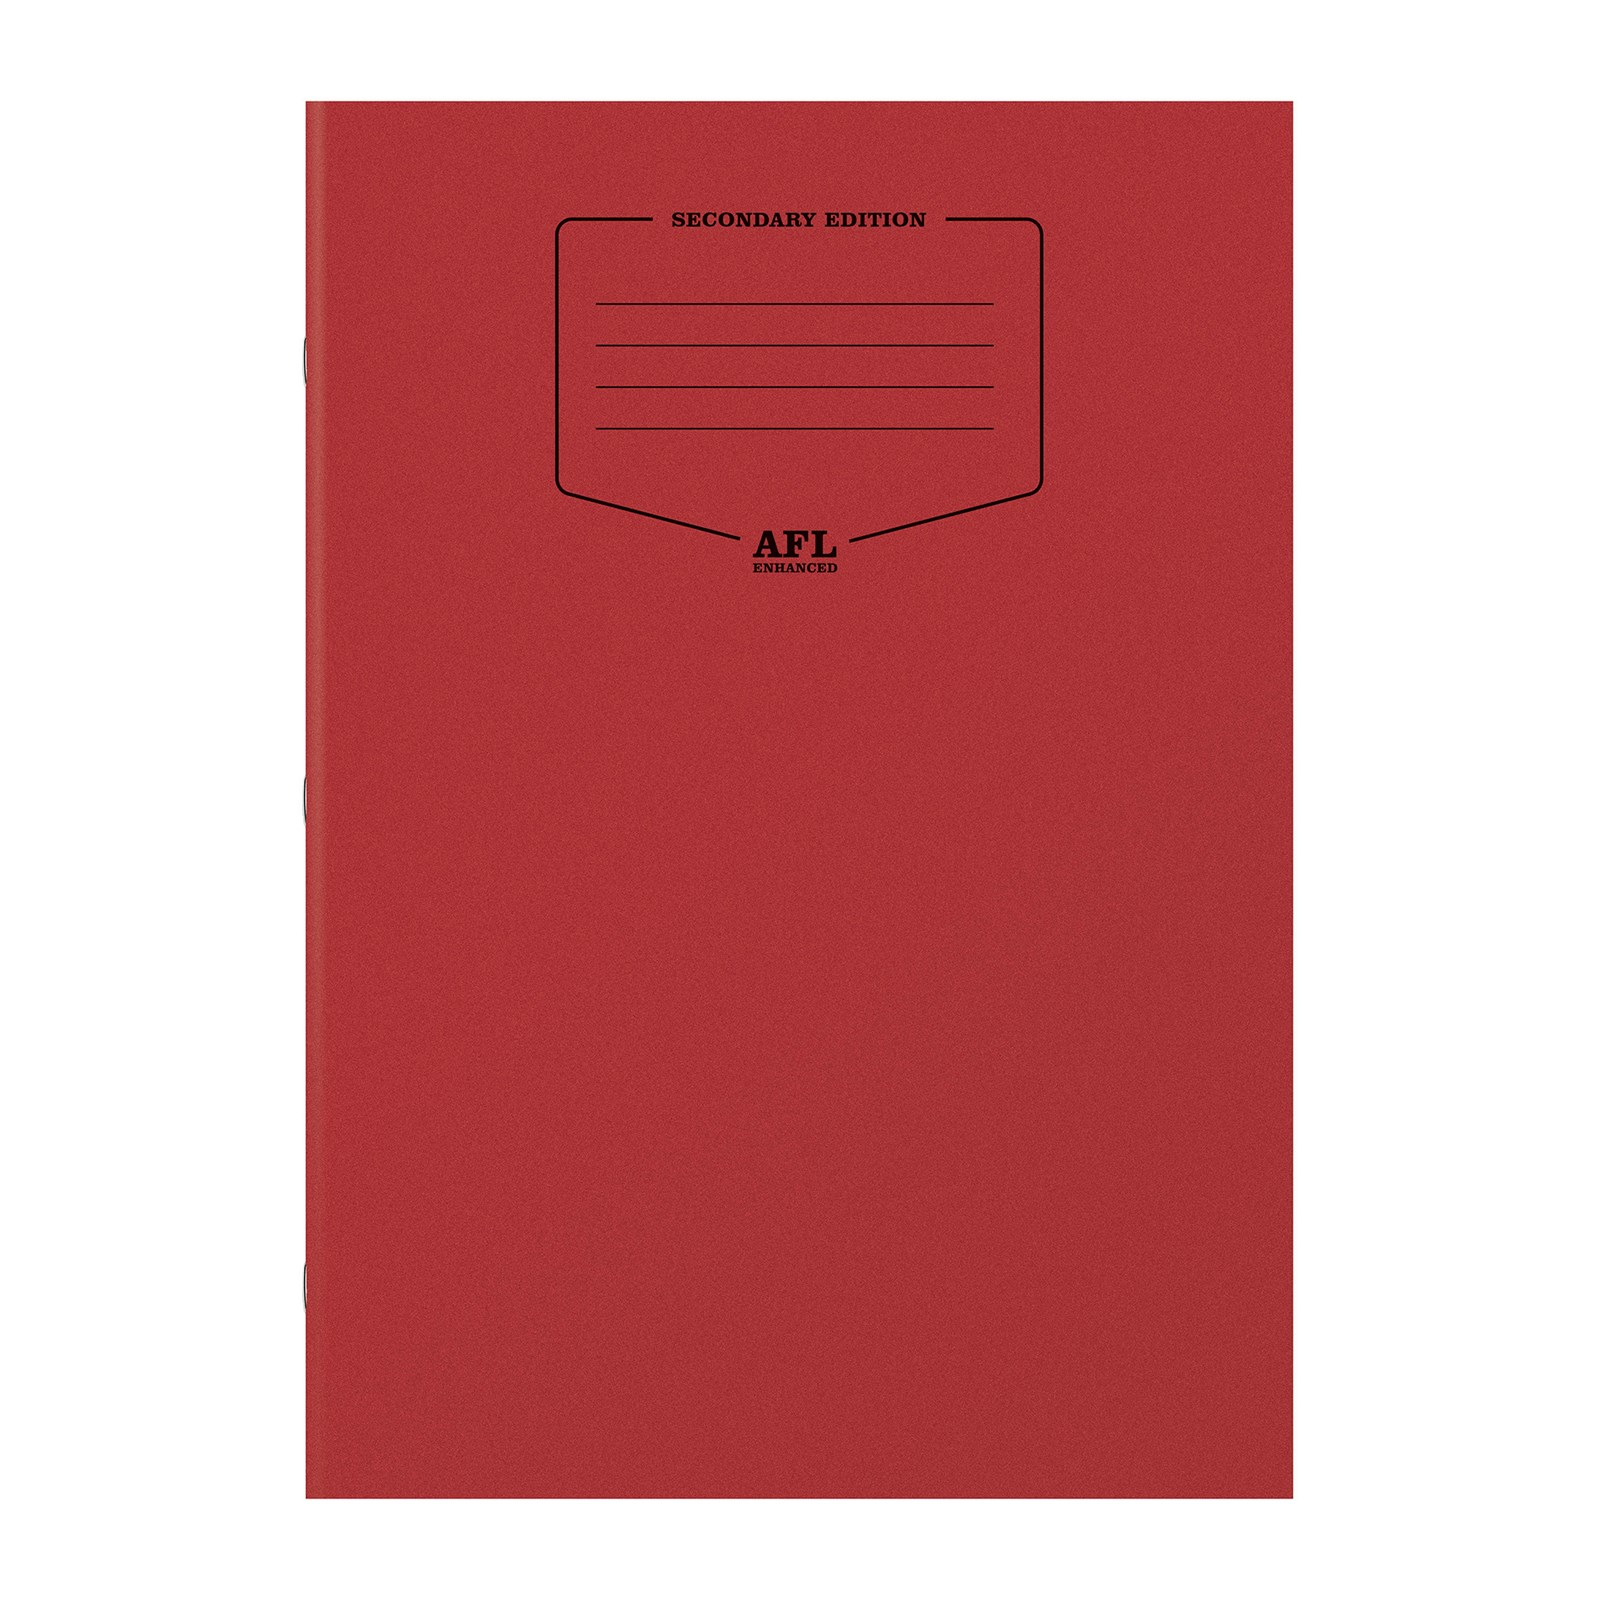 A4 AFL Enhanced Exercise Books  - Red